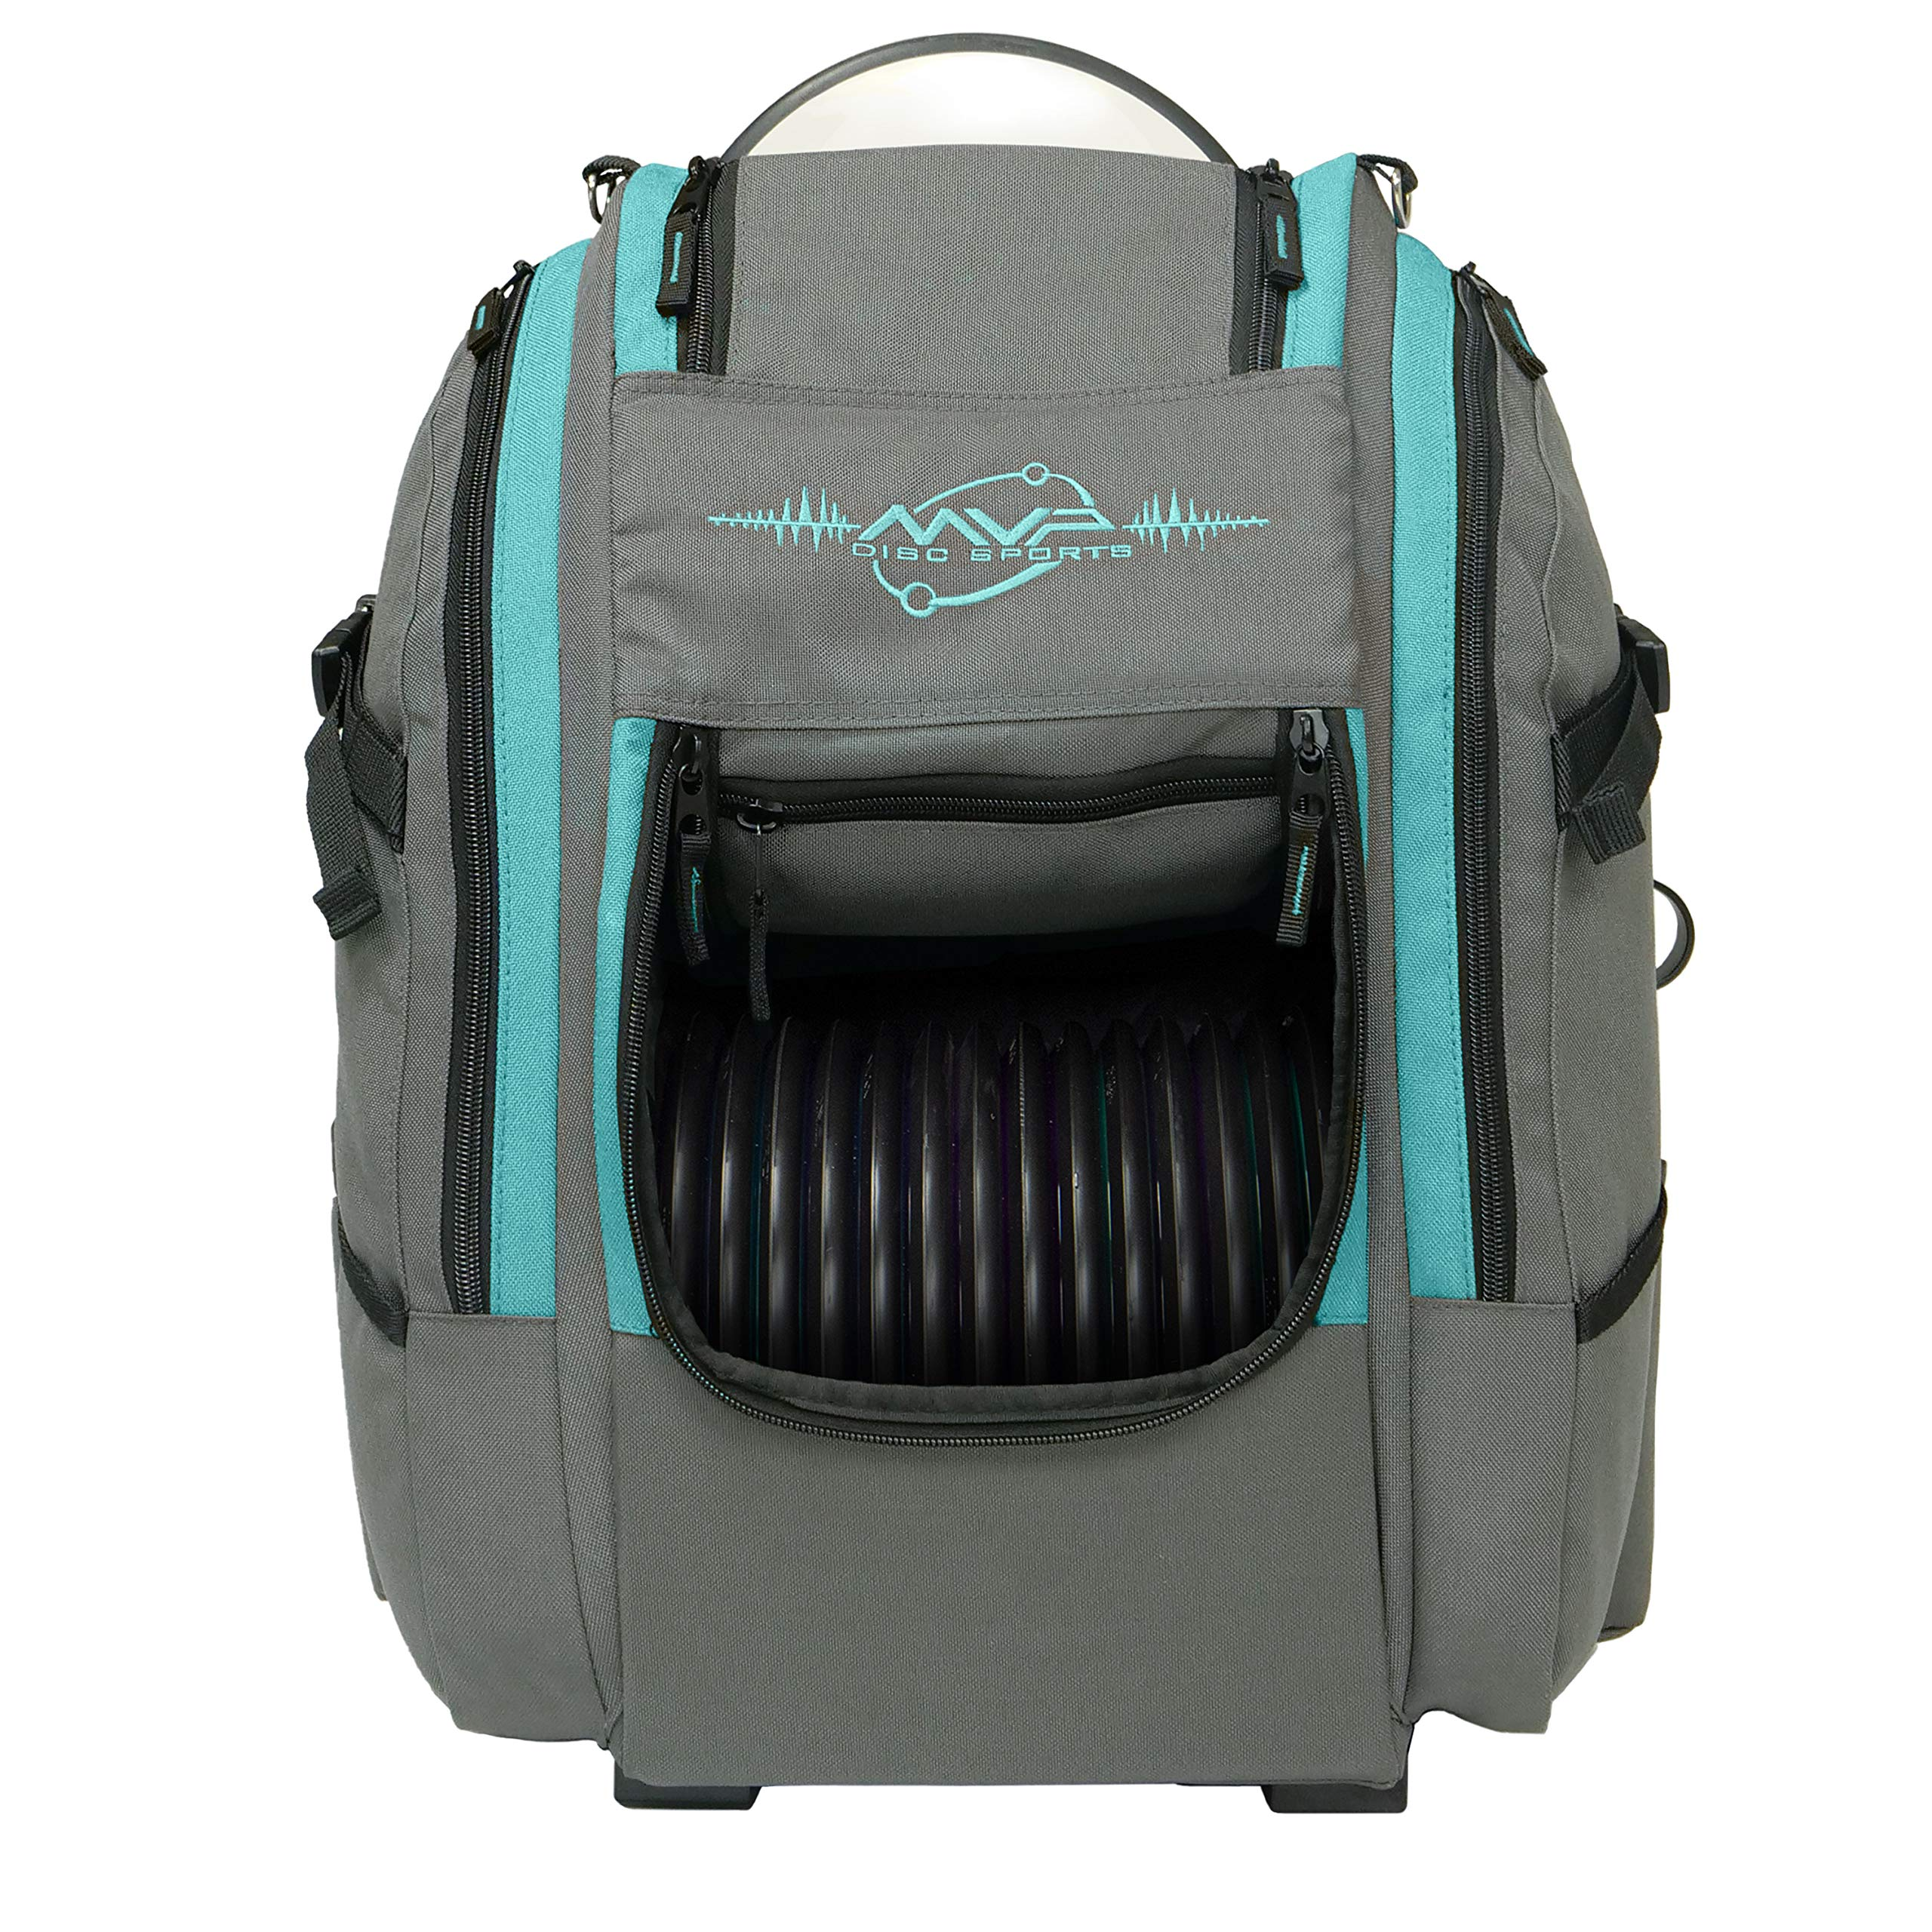 MVP Disc Sports Voyager Slim Bag (Gray/Aqua) by MVP Disc Sports